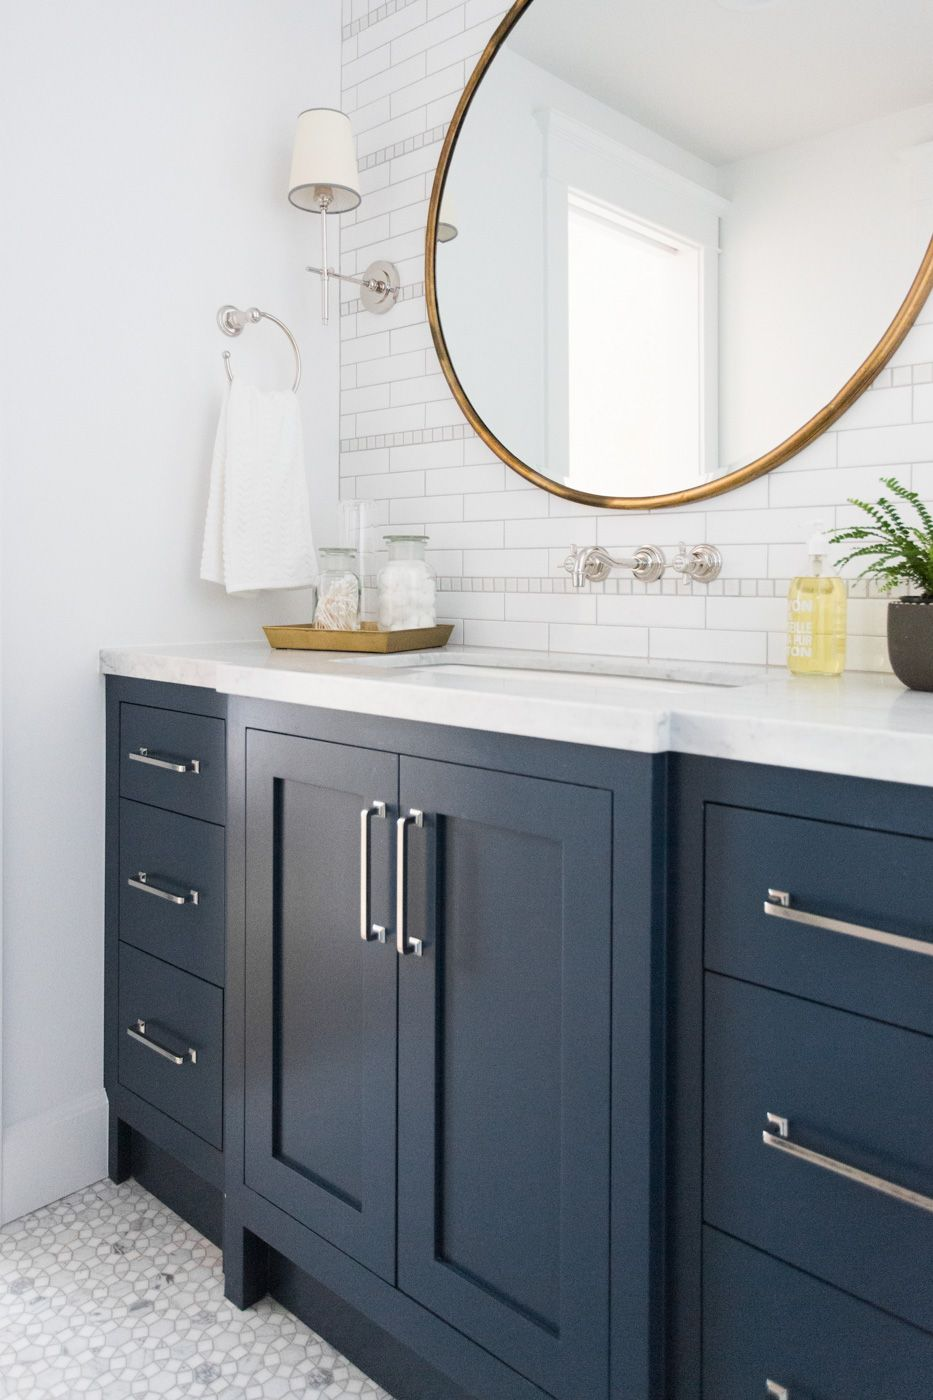 Awesome White Wooden Bathroom Cabinet